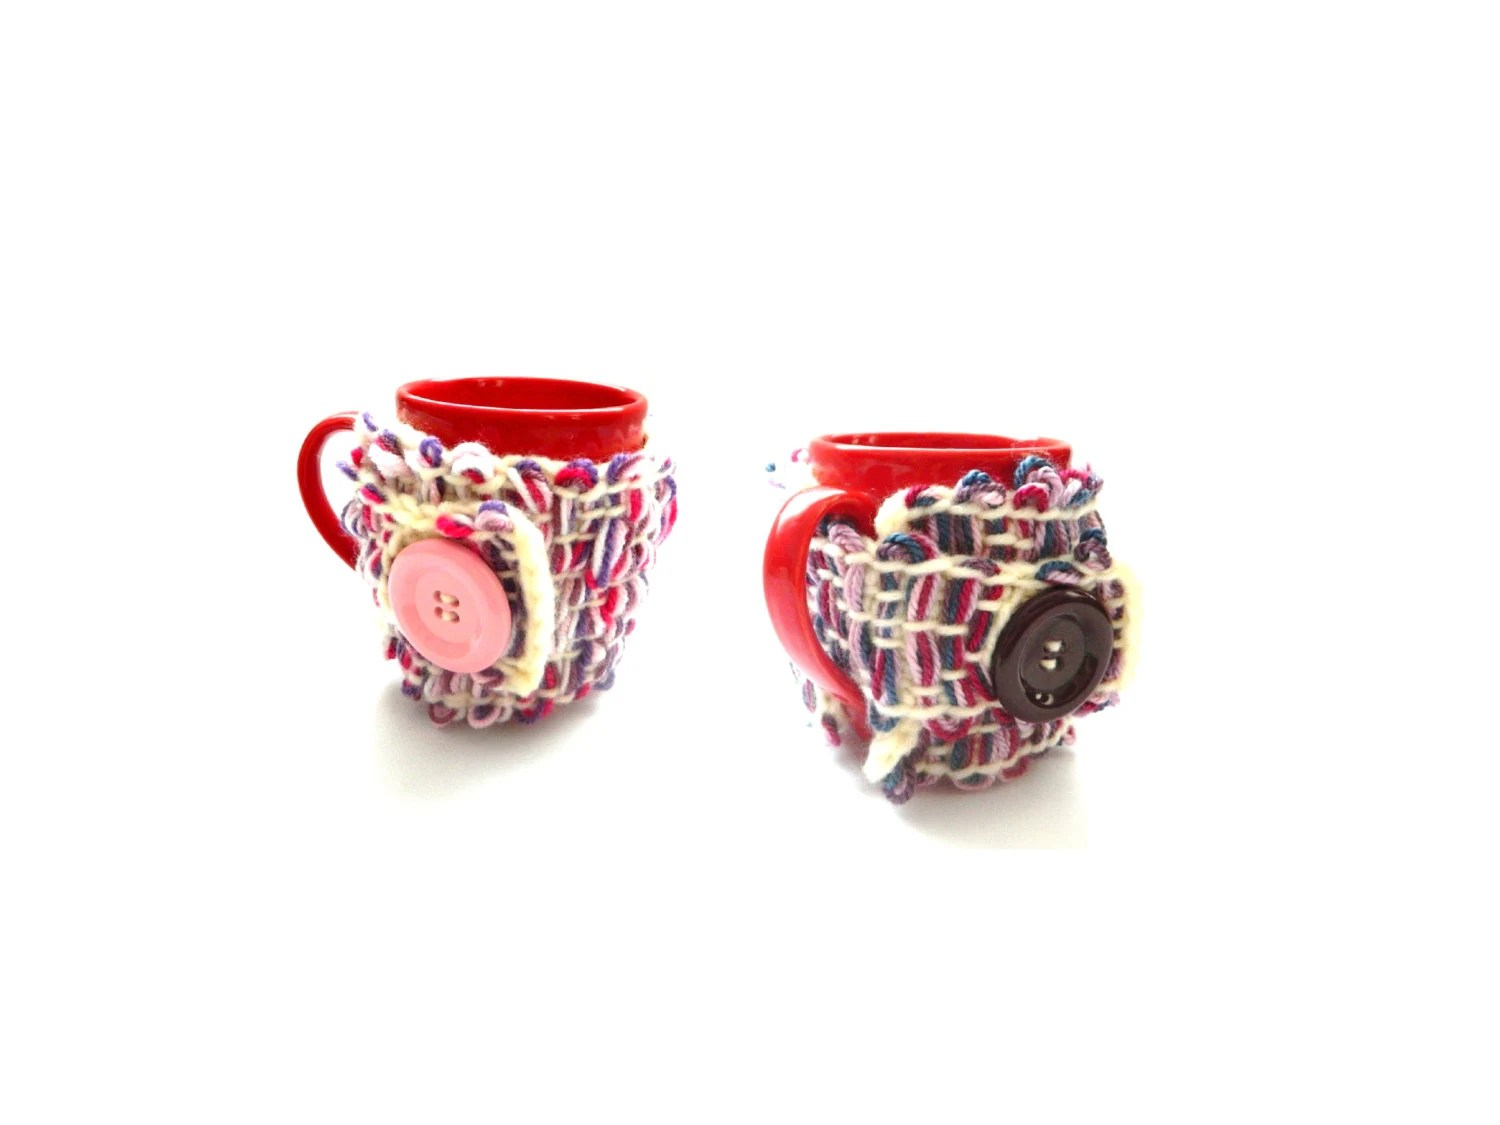 Pippi's OOAK Plum / Pink Mug Cozy, Colorful Crochet Mug Hugger, Mug Cover up, Mug Wrap, Christmas Gift, Unique, For Her, For Him, Rose - pippisLongstockings